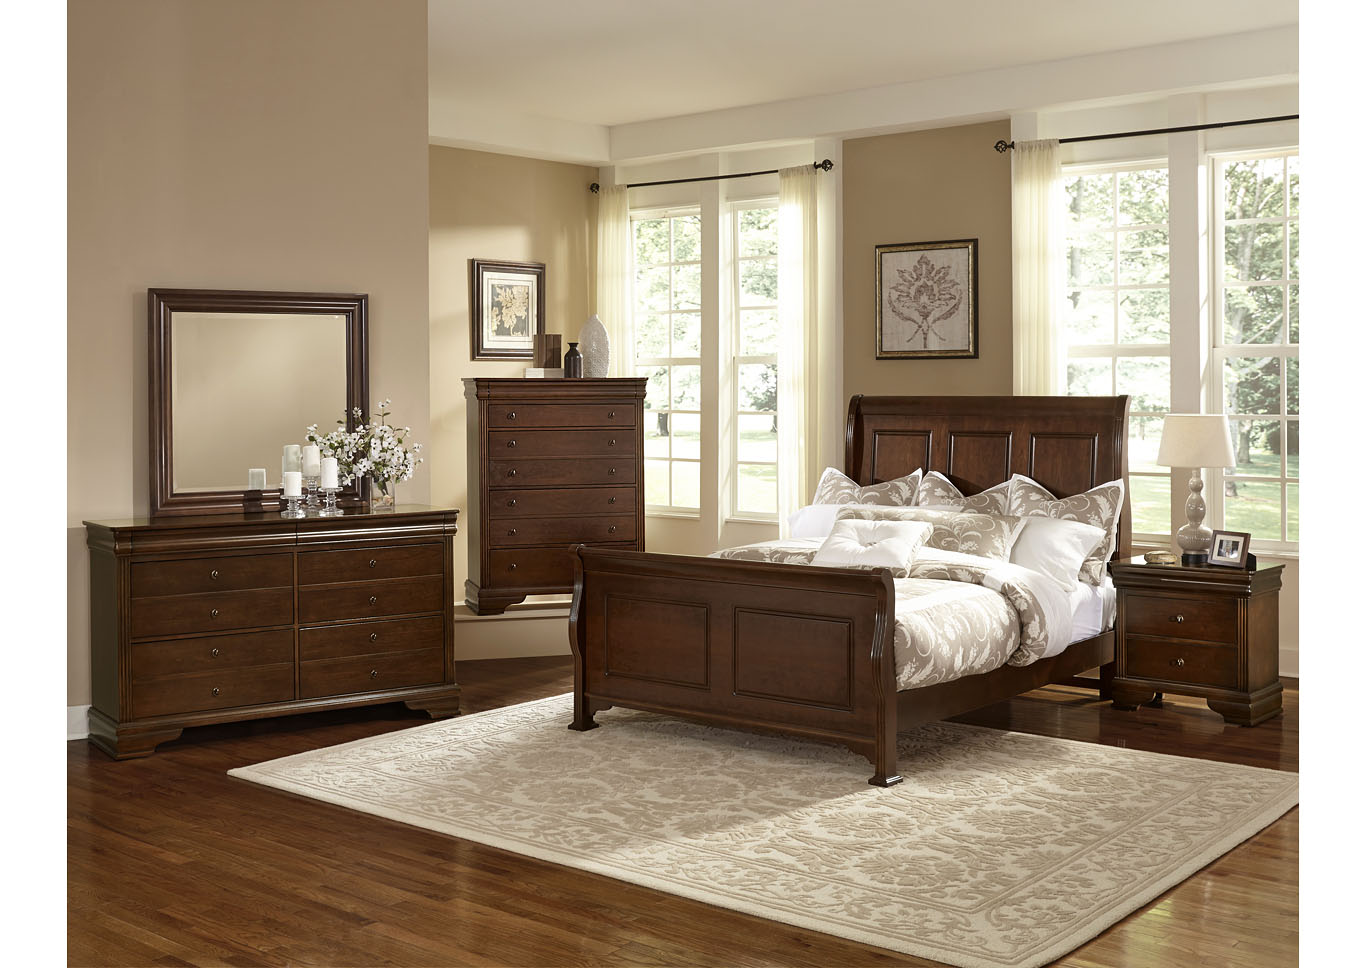 French Market French Cherry King Poster Bed w/ Dresser, Mirror and Nightstand,Vaughan-Bassett